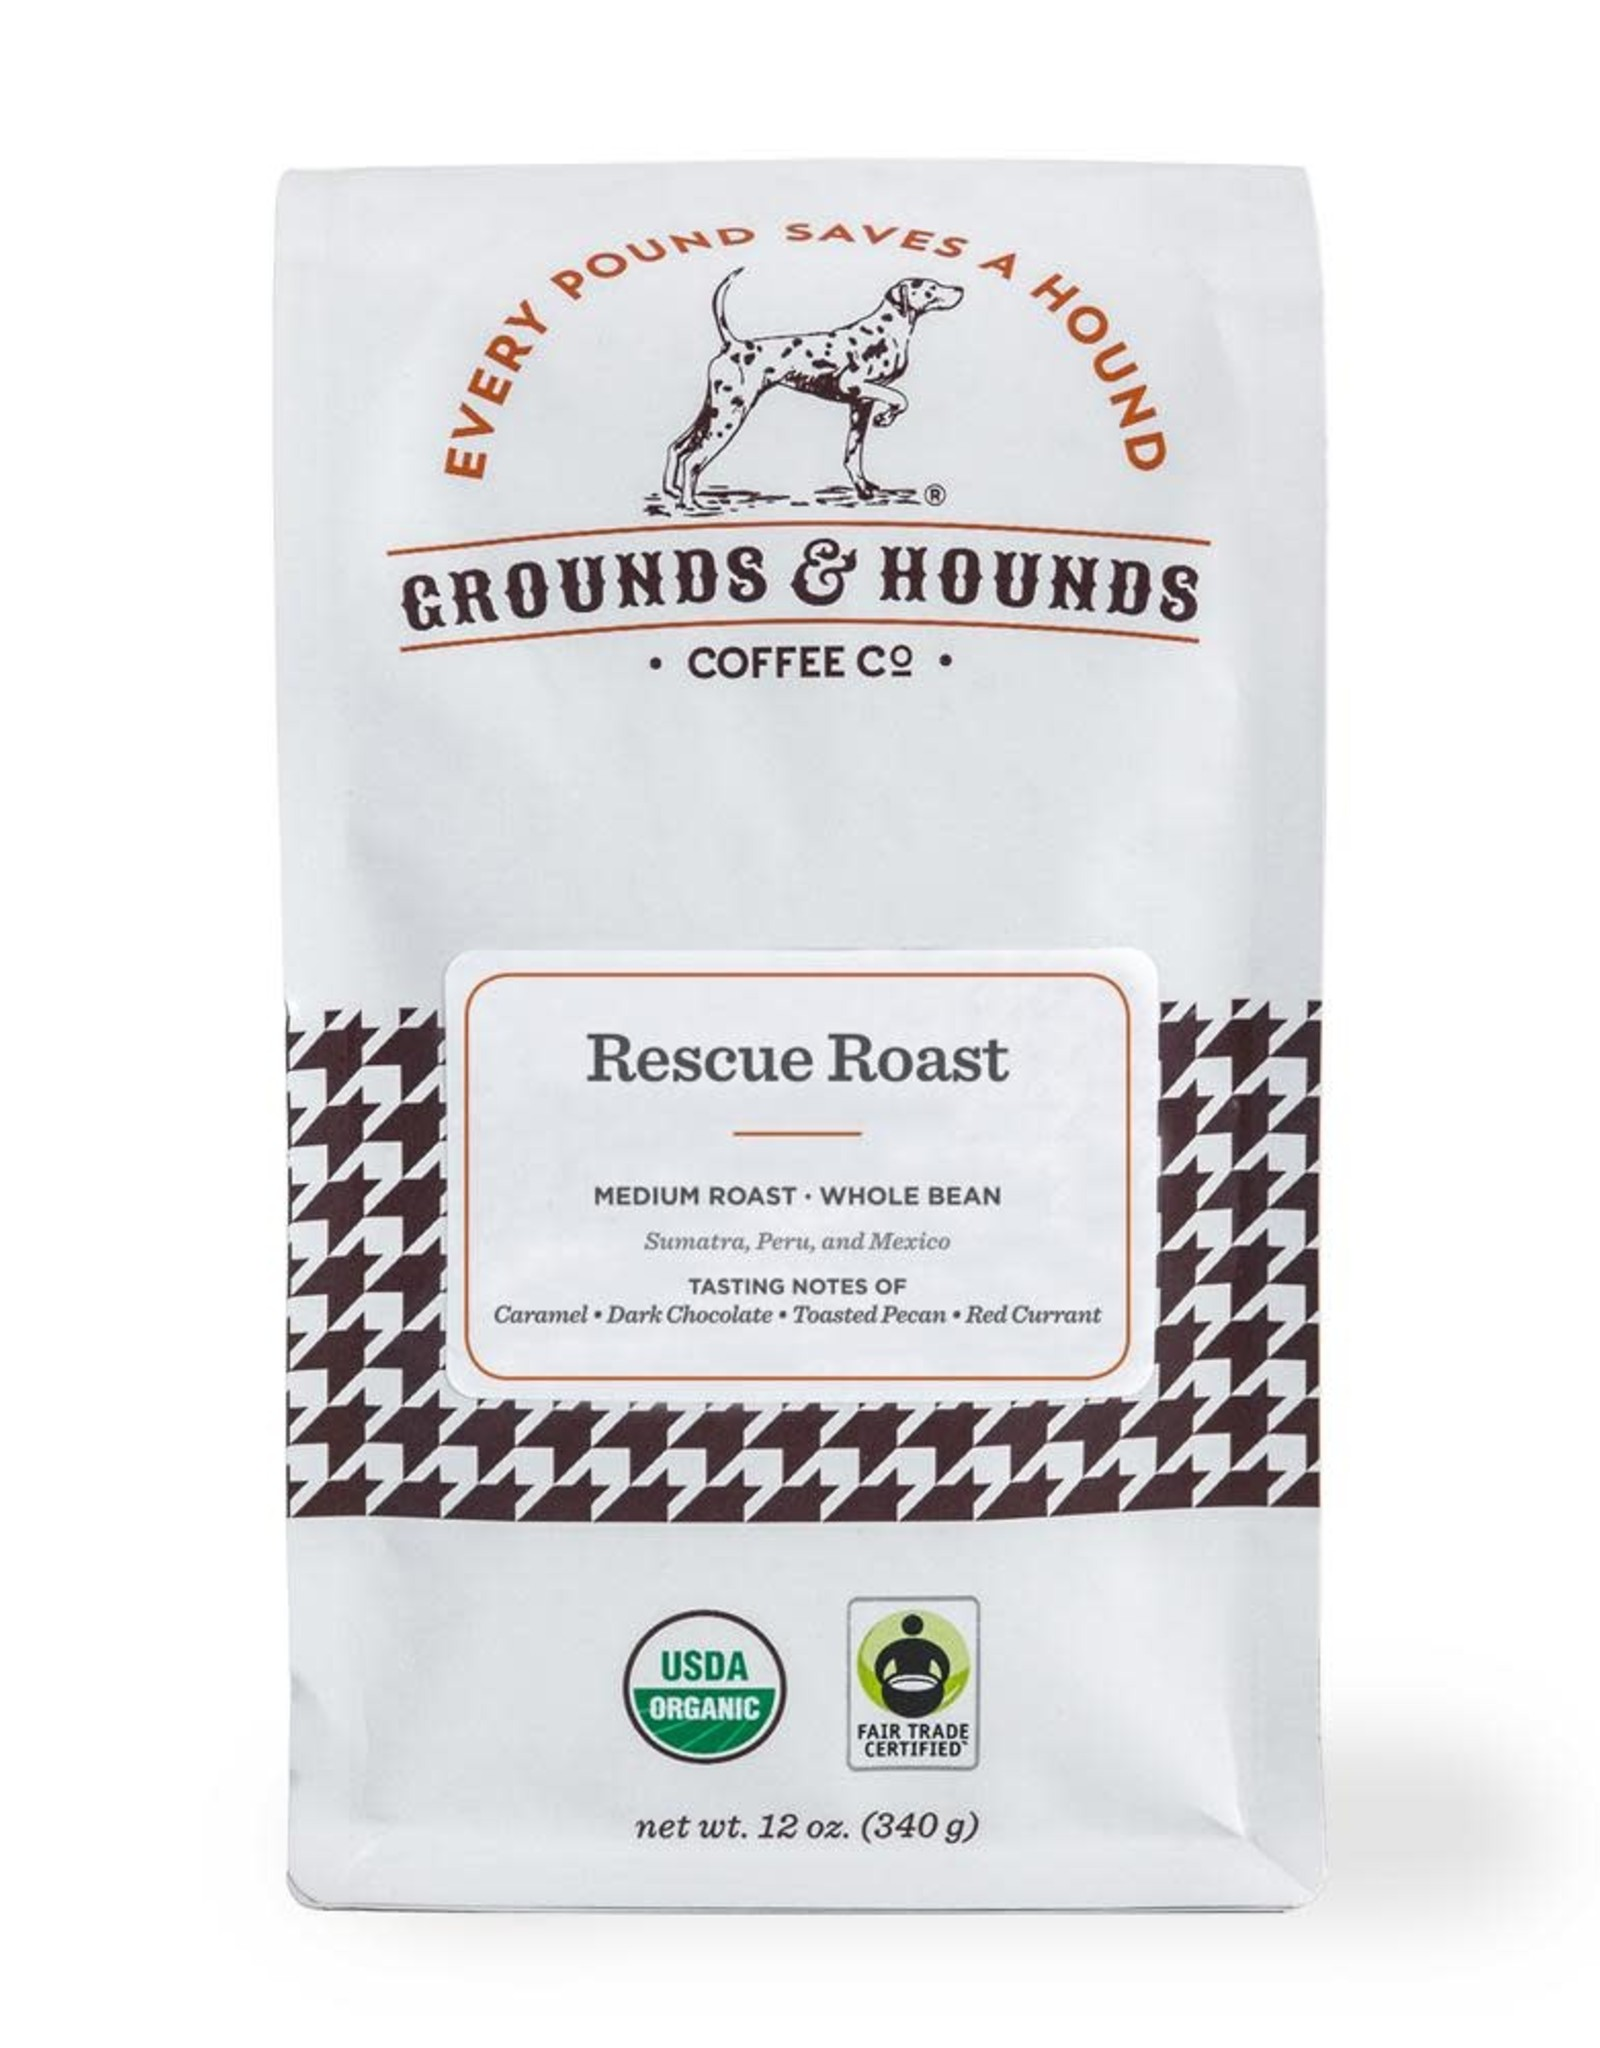 Grounds & Hounds Whole Bean Coffee Rescue Roast